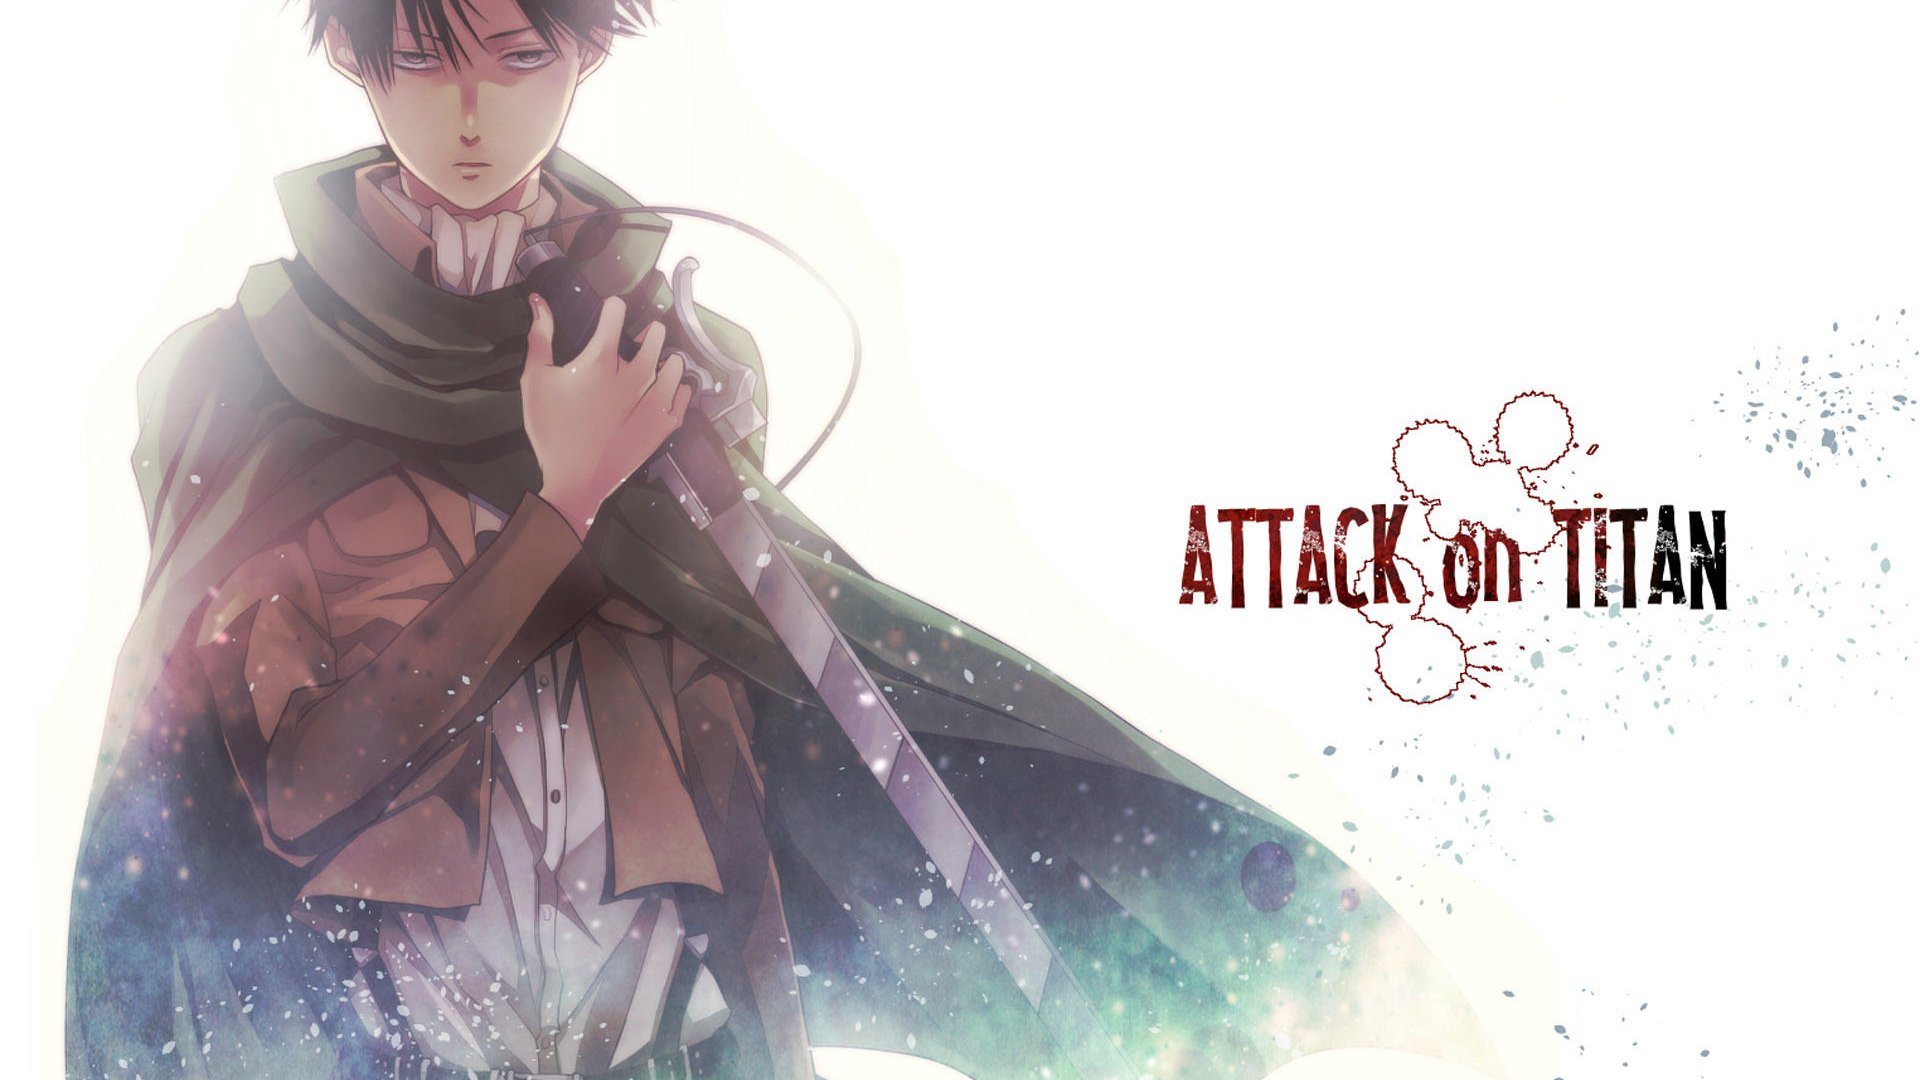 Attack On Titan 2 Release Date And News The Last Wings Attack On Titan Wallpaper Laptop 1920x1080 Download Hd Wallpaper Wallpapertip